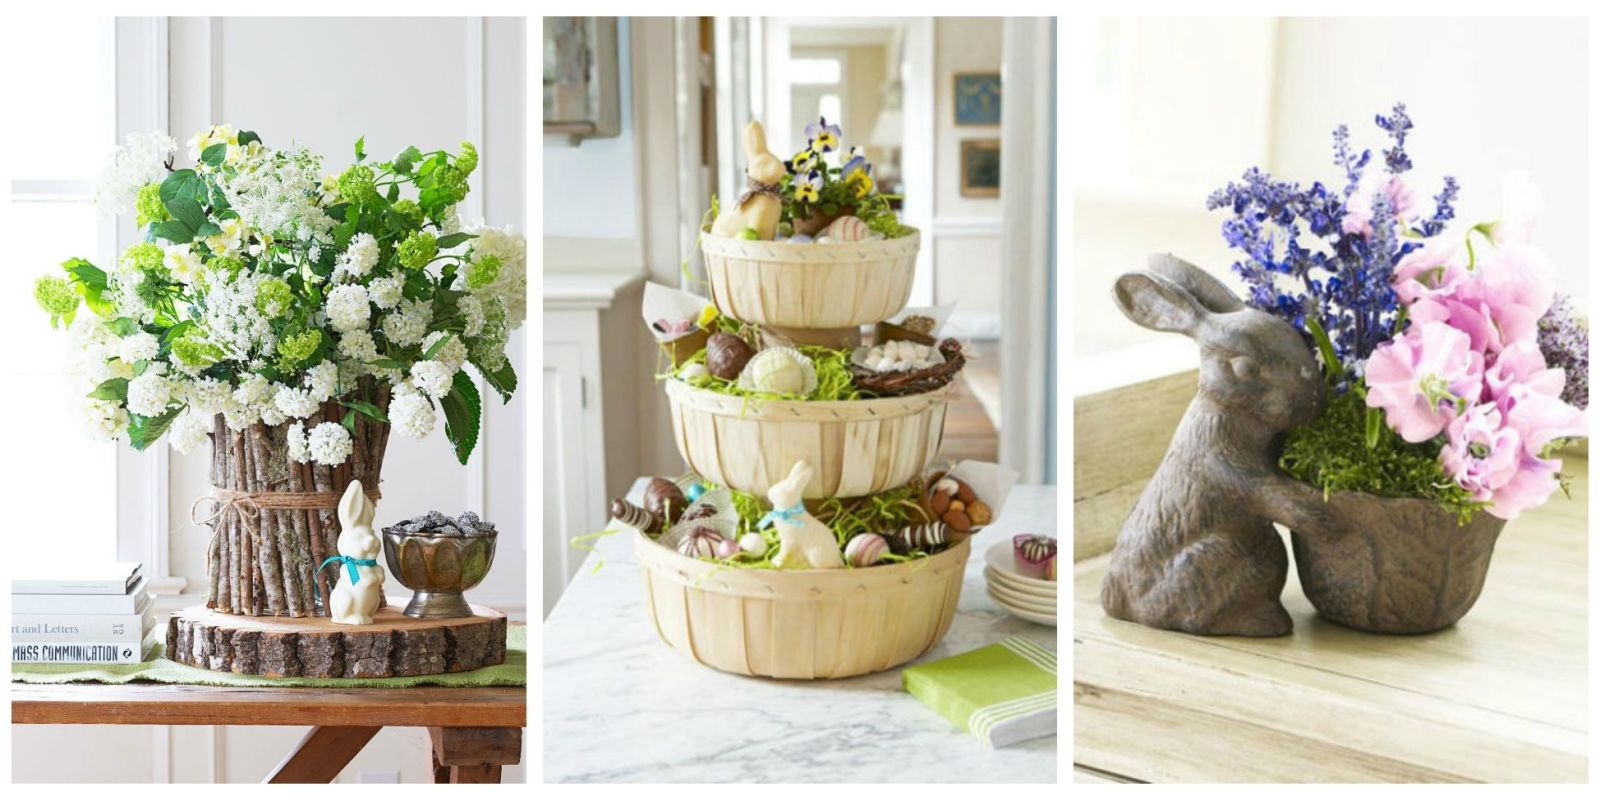 70 diy easter decorations ideas for homemade easter for Home easter decorations